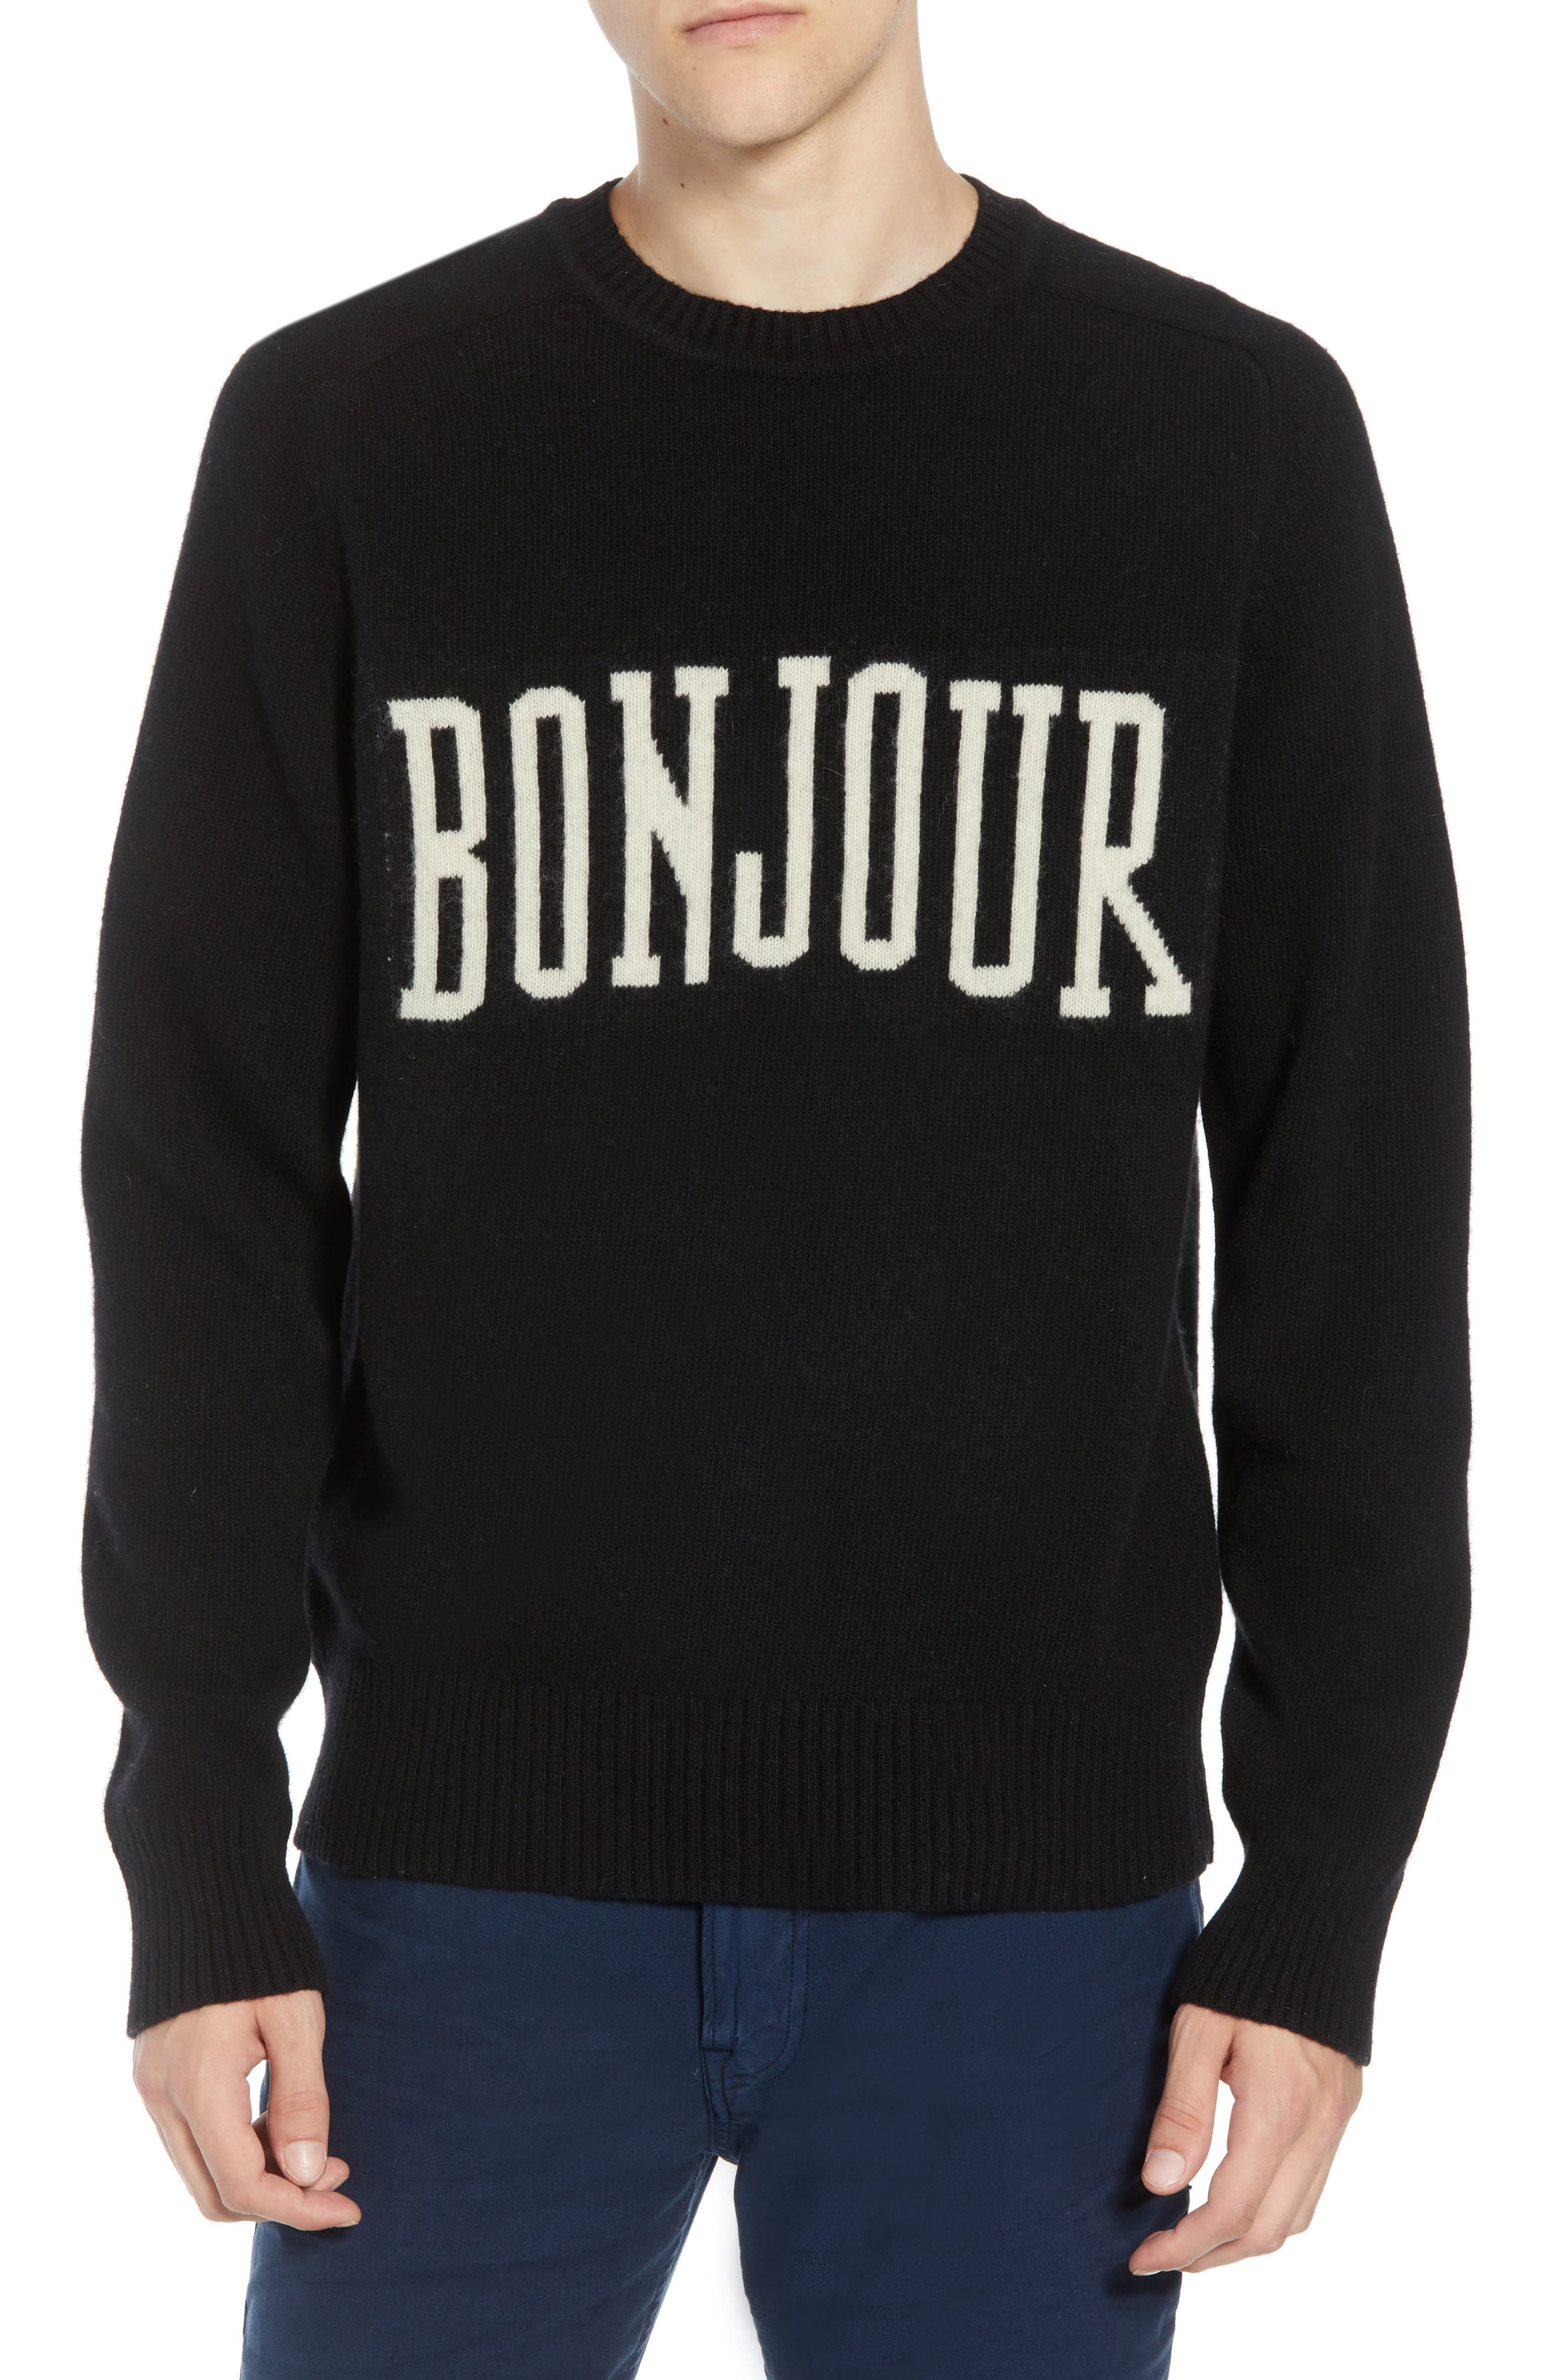 French Connection Bonjour Wool Blend Sweater, Black